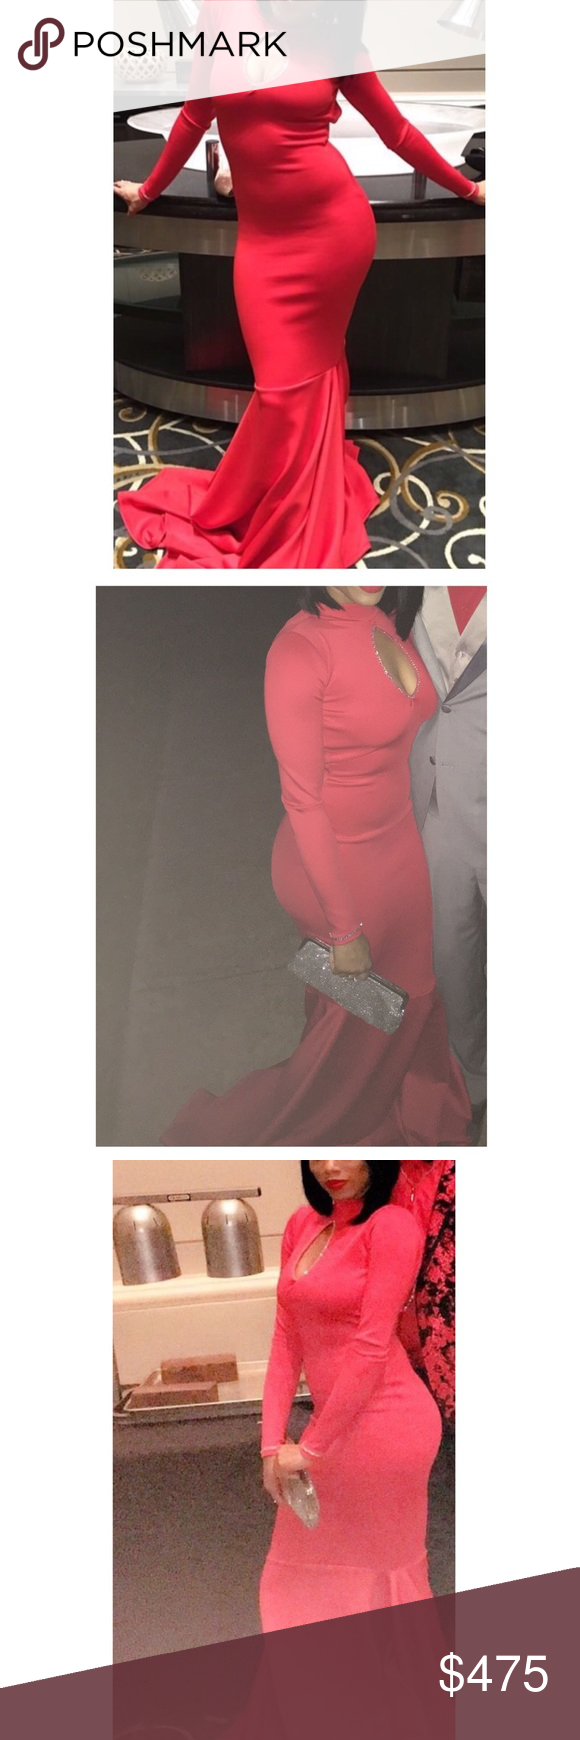 Casual red mermaid custom made dress red long sleeve dress with